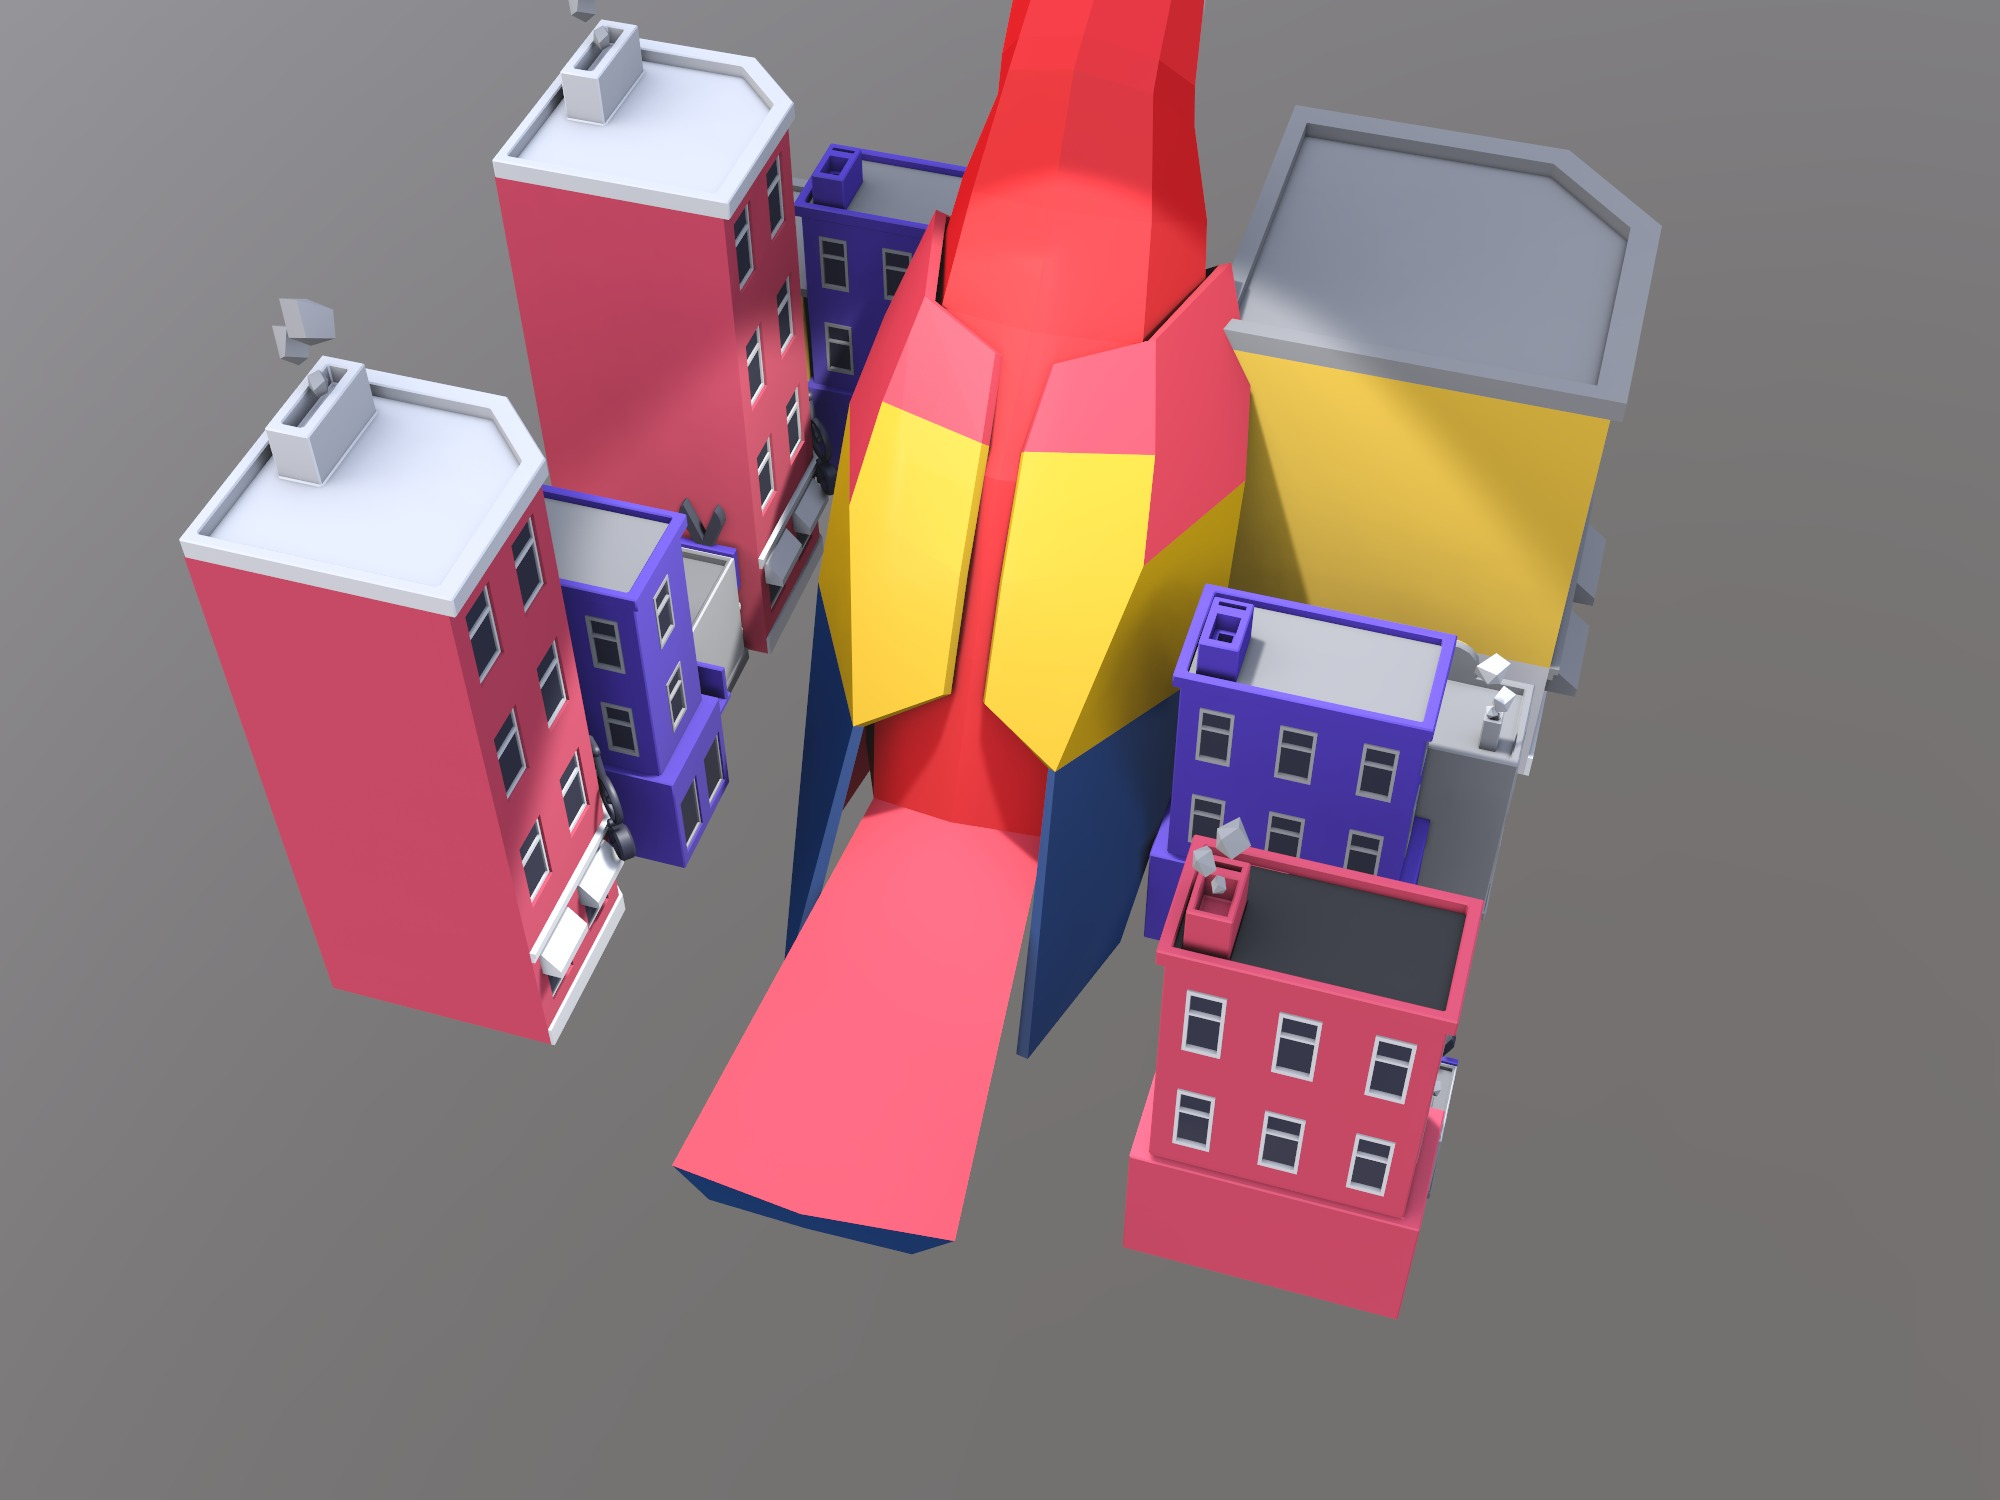 Parrot Monster Roams Through City - 3D design by s642128 Oct 17, 2018